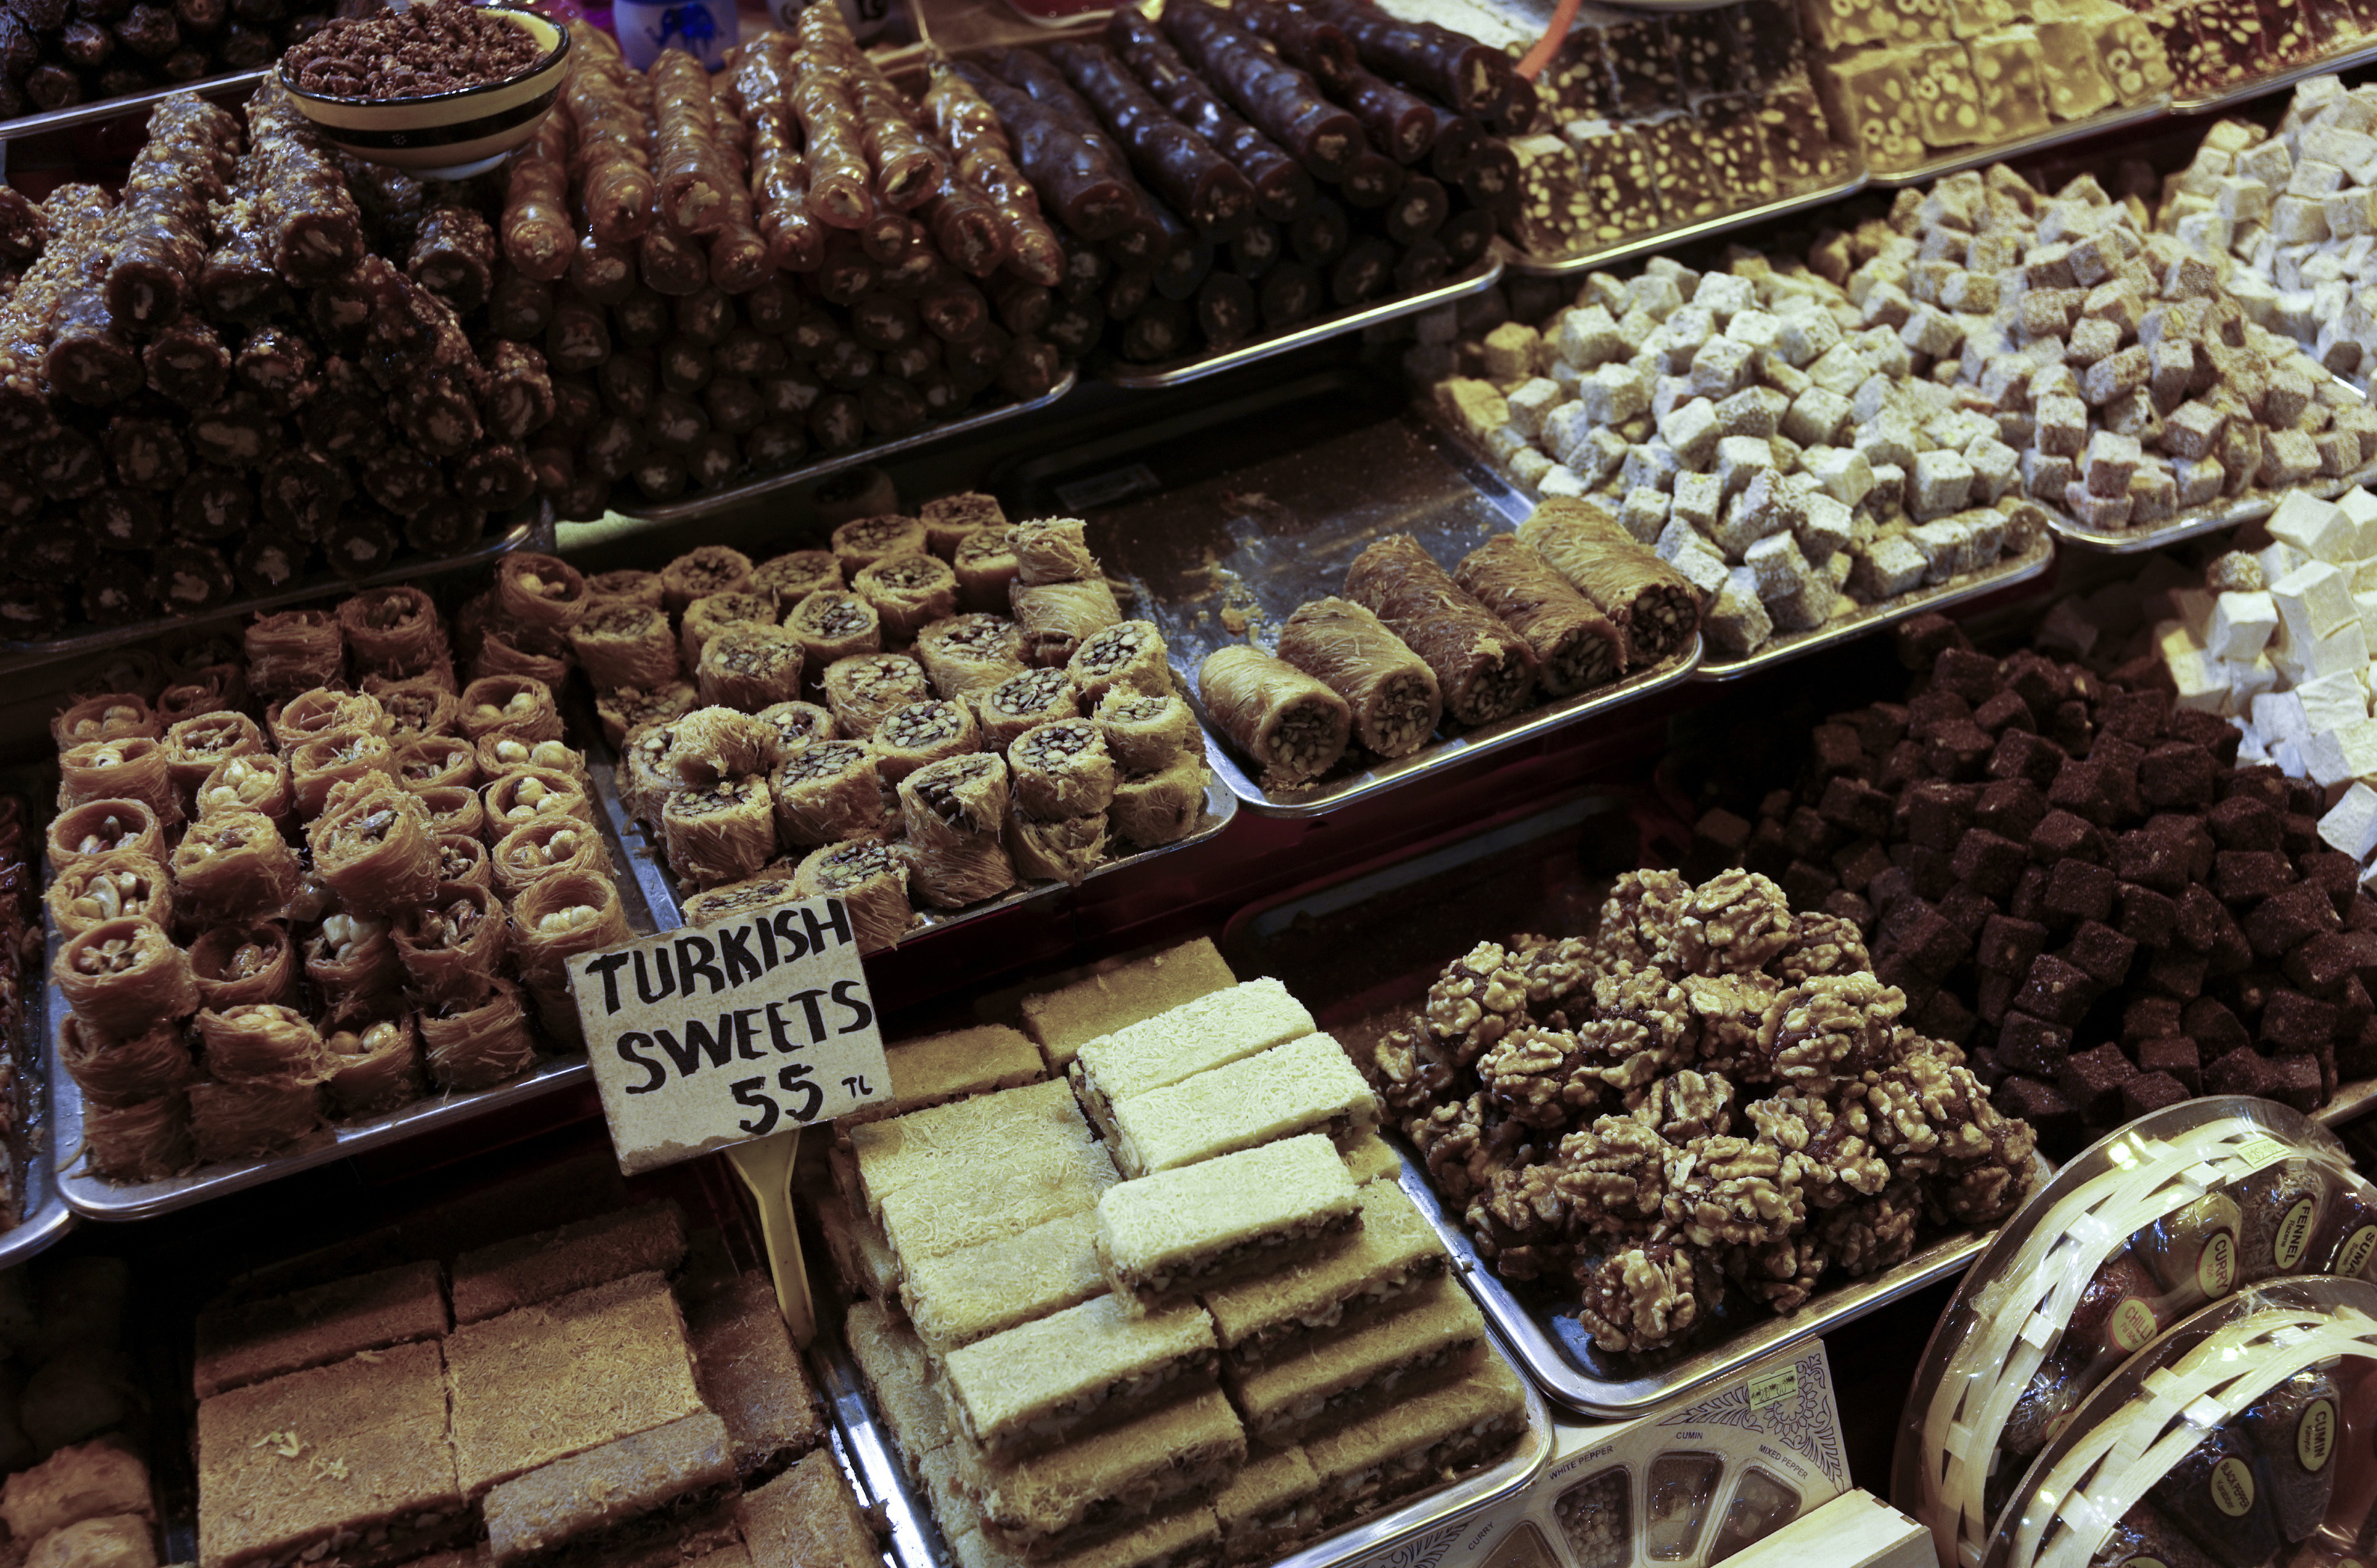 FILE - The Egyptian Bazaar is shown with stalls beautifully displaying spices, dried fruit and nuts, in Istanbul, Turkey, Oct. 29, 2013. Russia is tightening restrictions on Turkish imports as tensions remain high between the two countries.